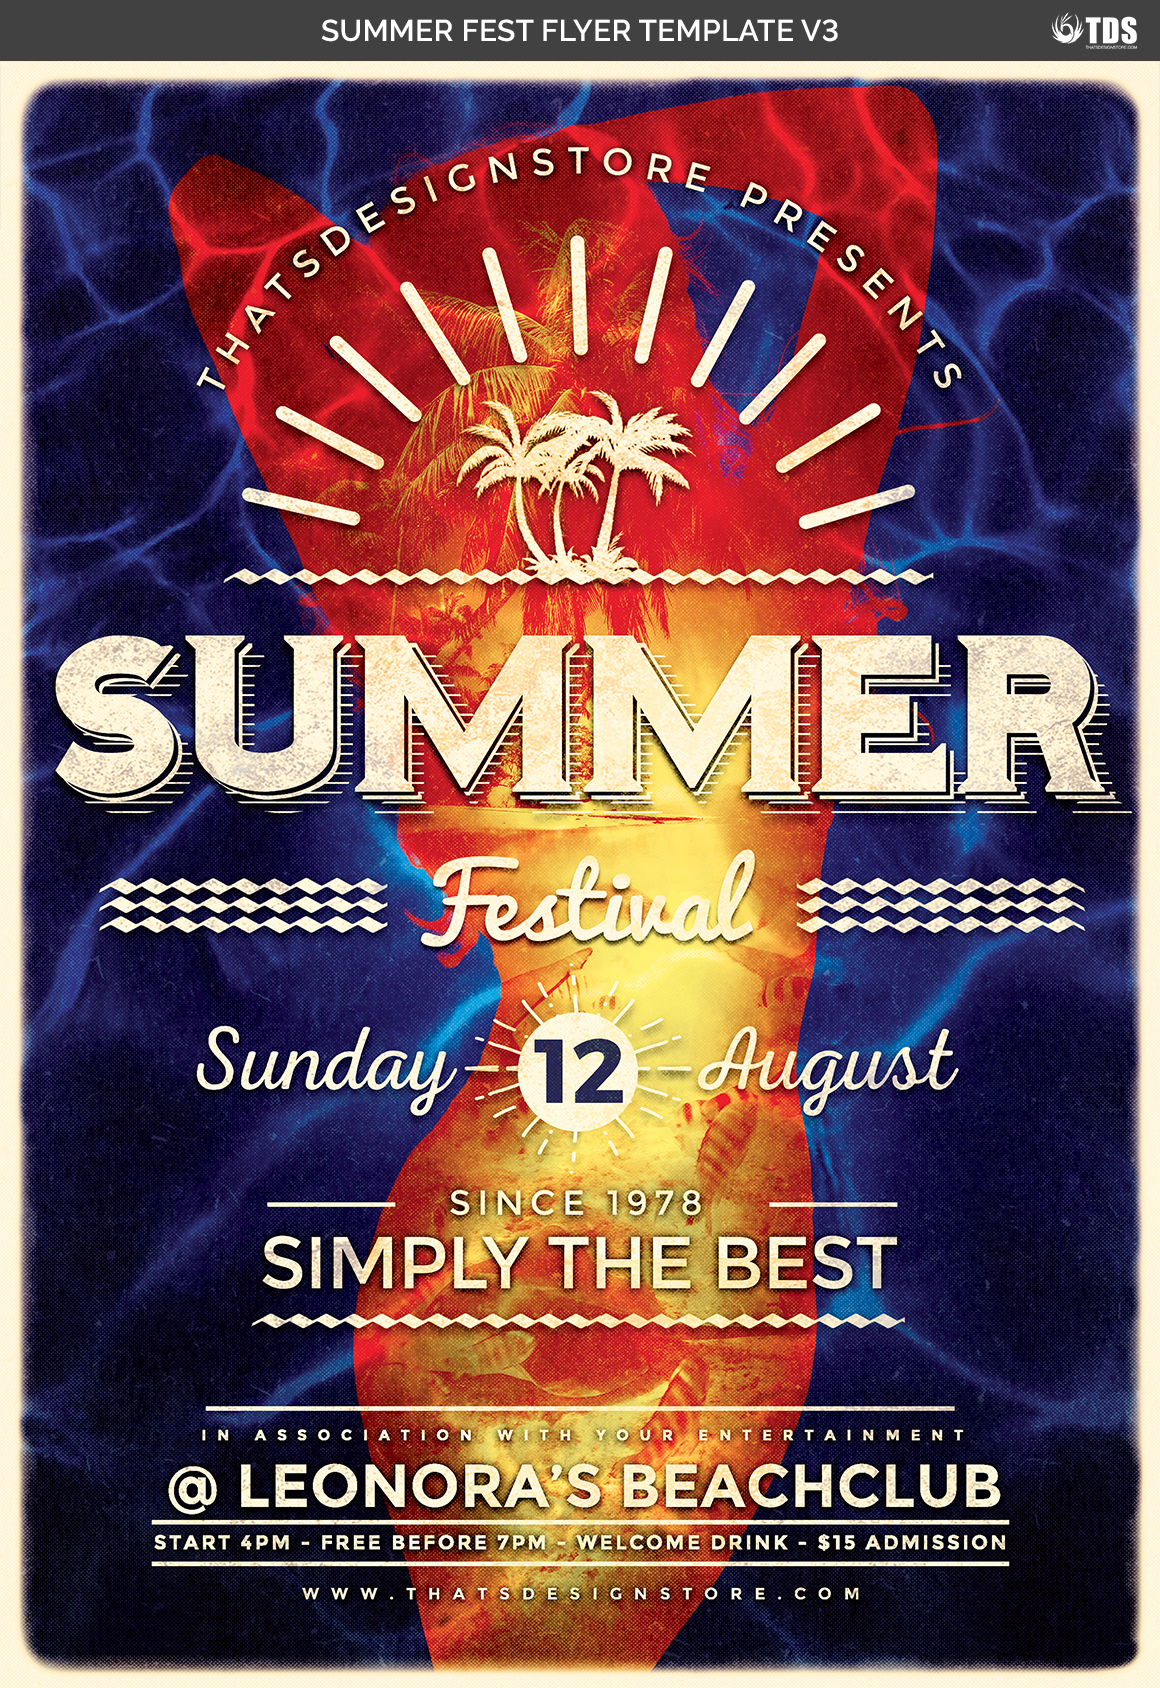 Summer Fest Flyer Template V3 example image 4